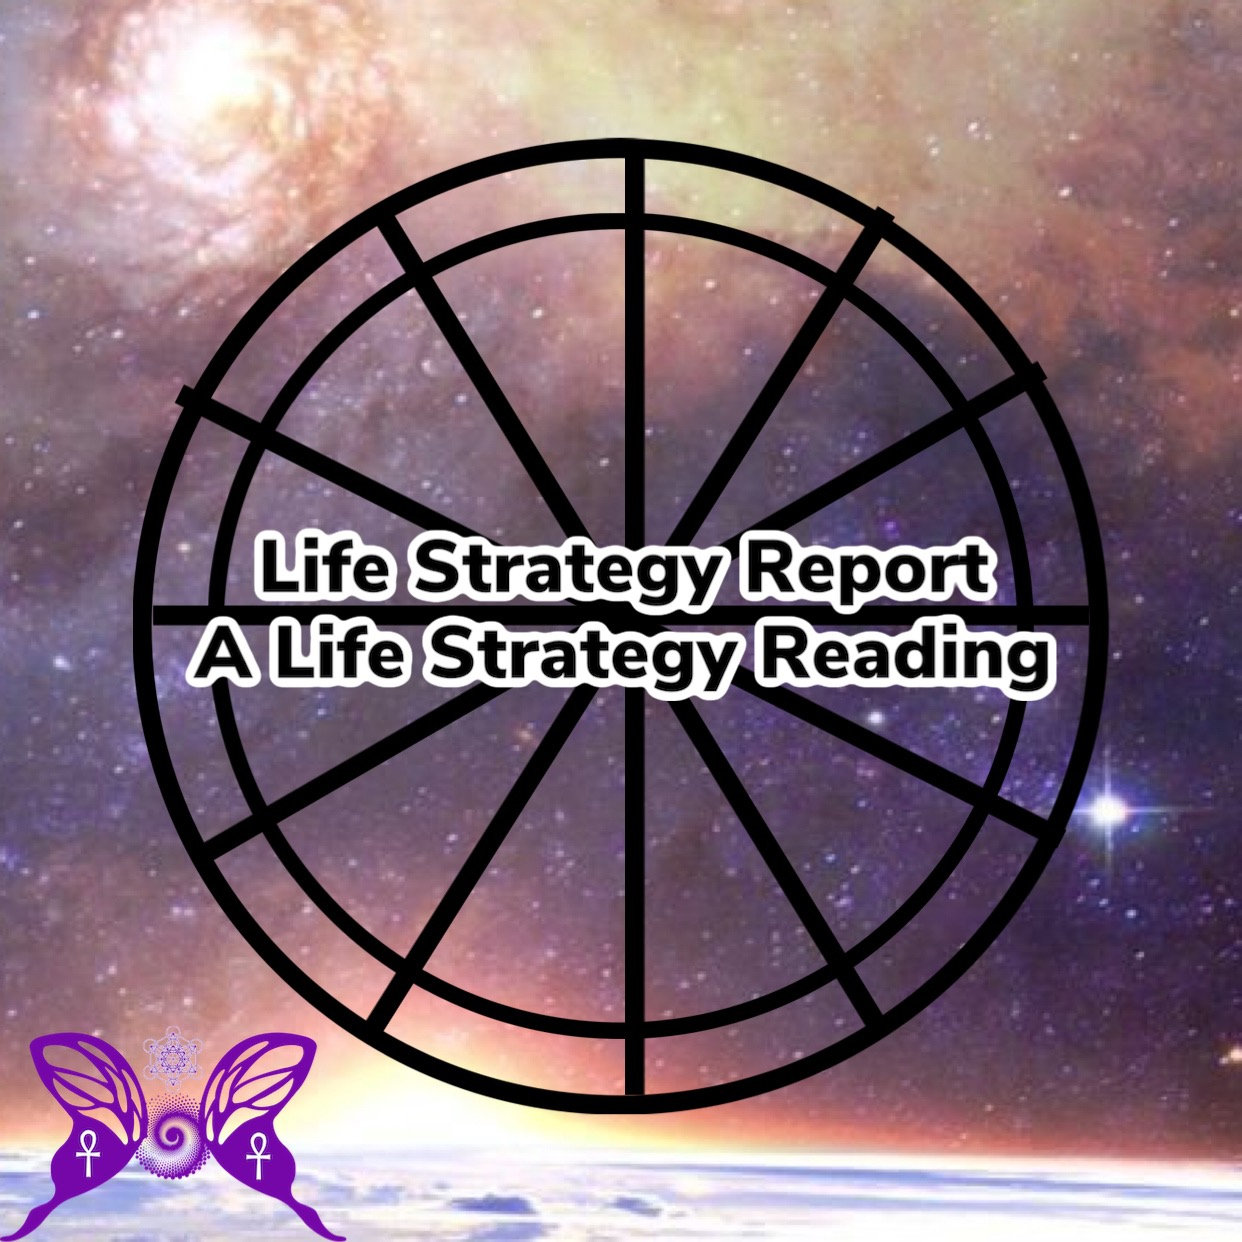 Life Strategy Report